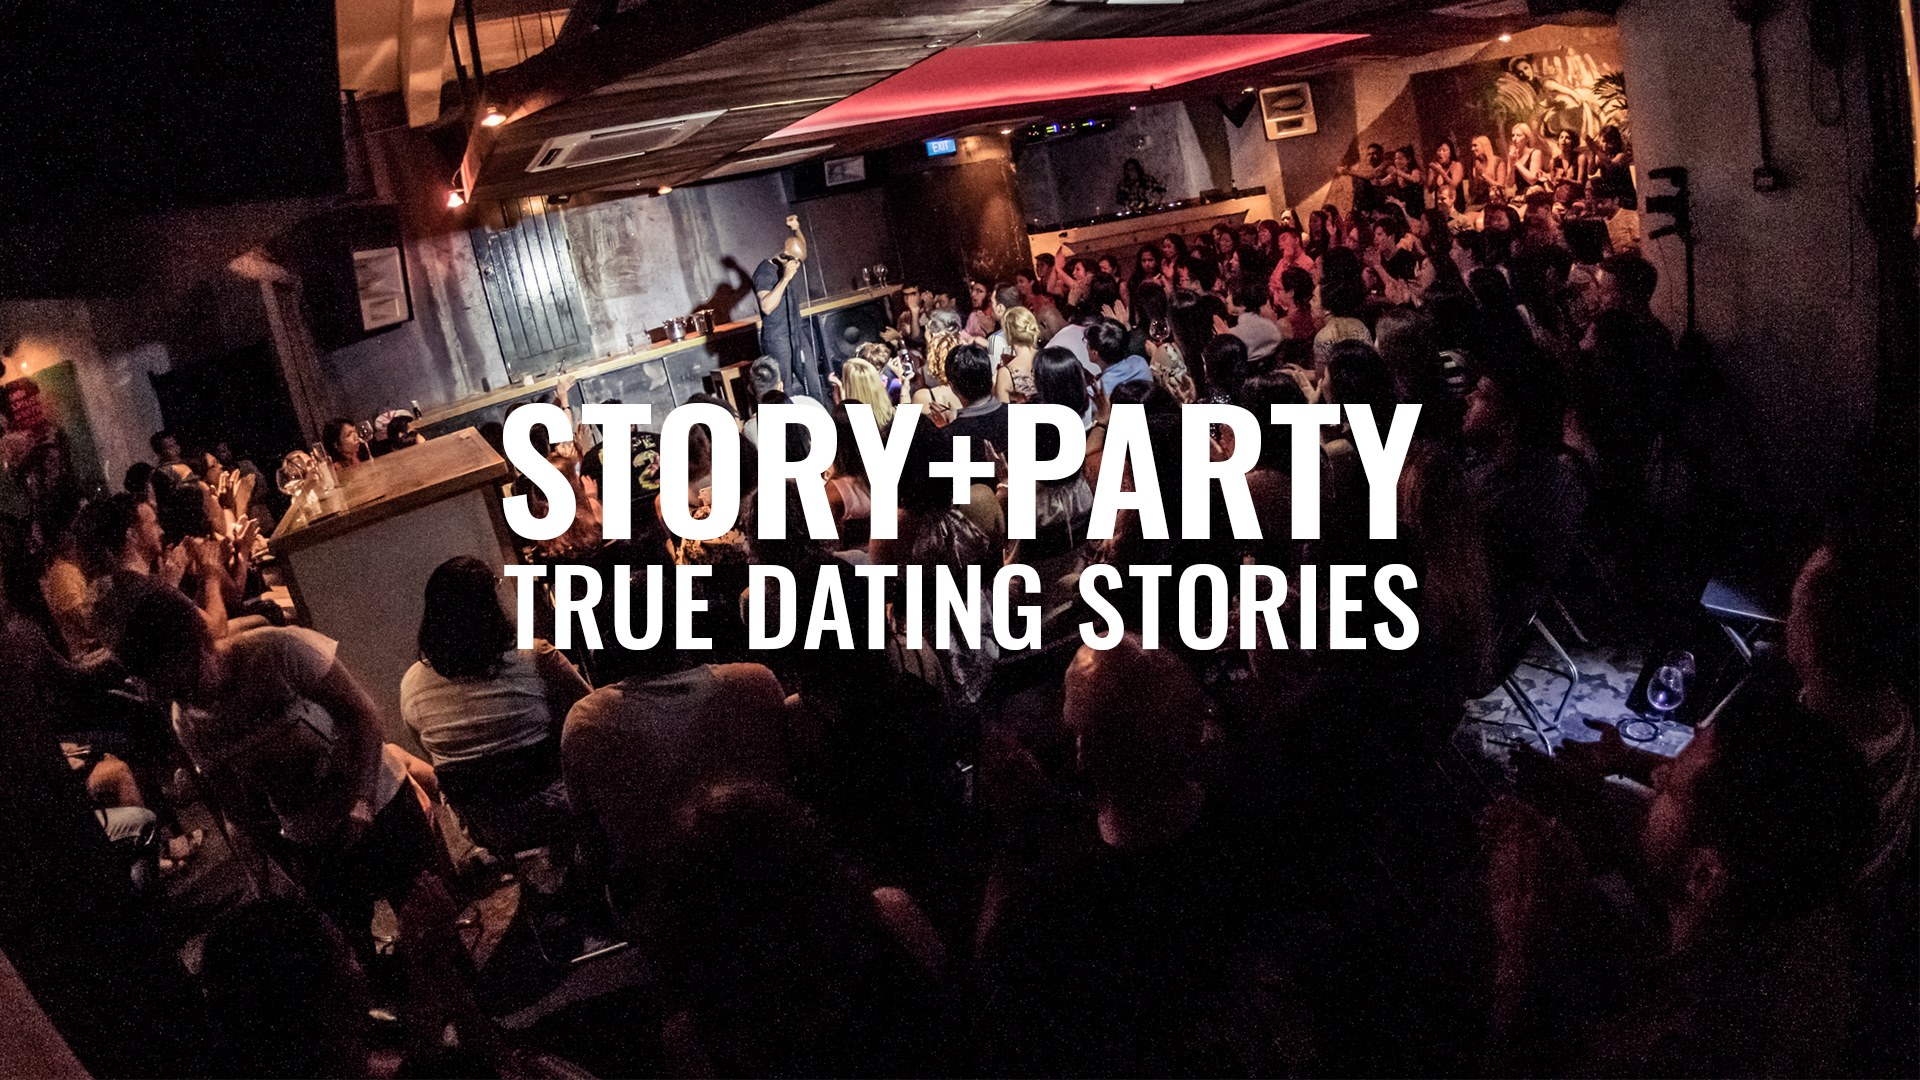 Story Party - True Dating Stories